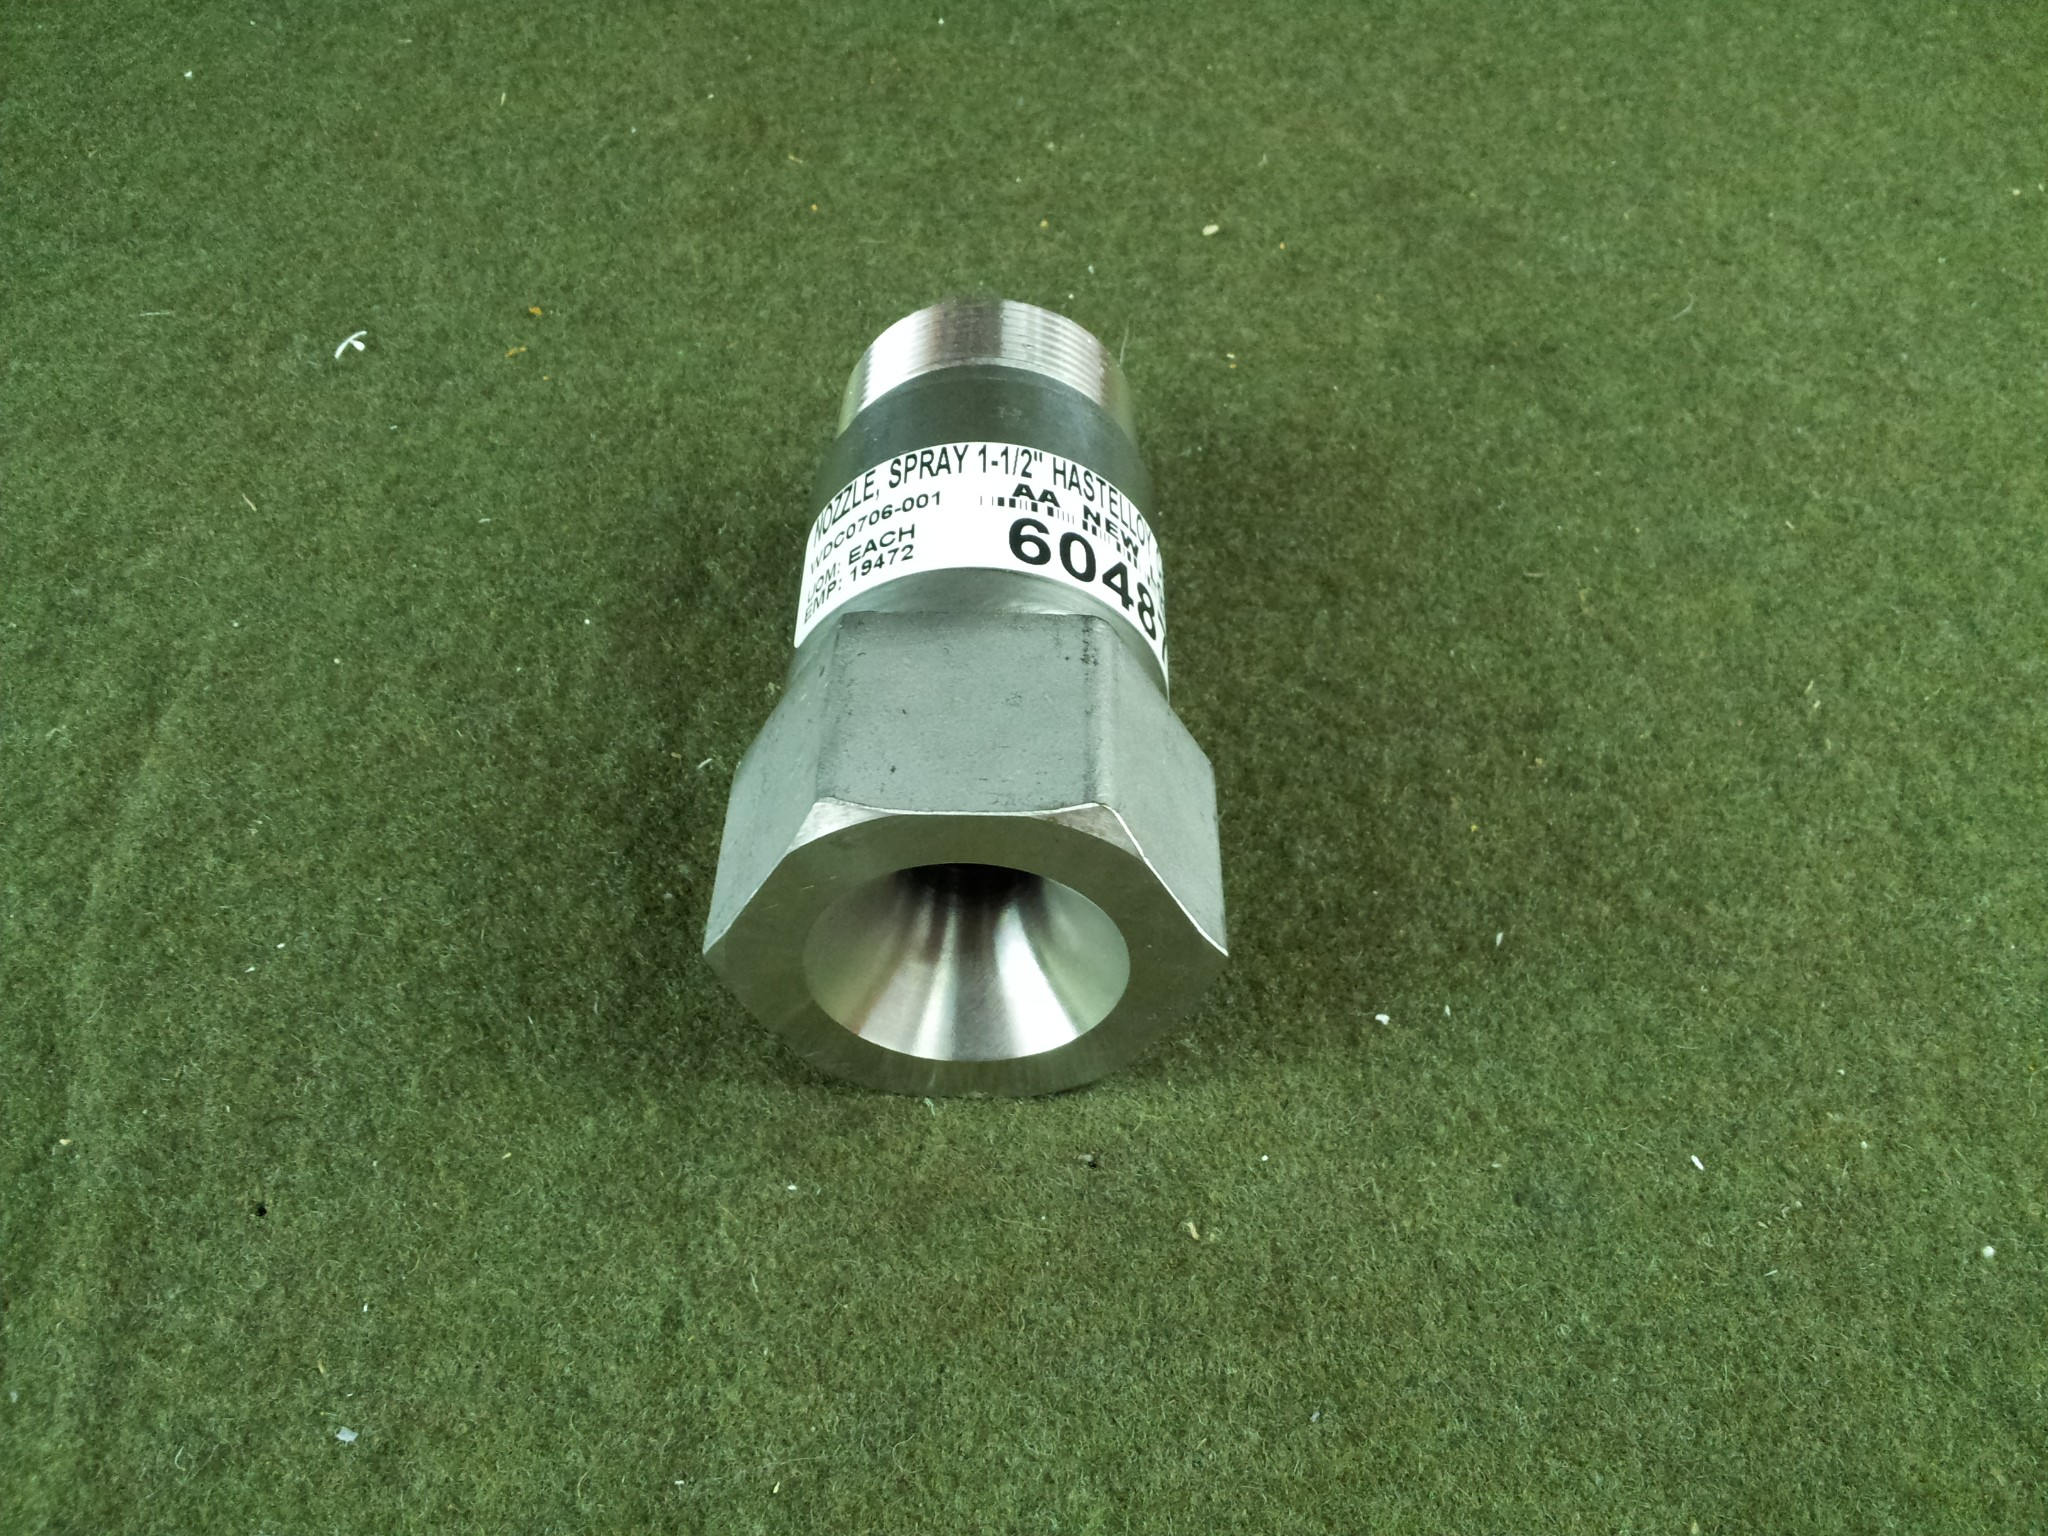 "BETE MP656M 316 1-1/2"" 90 Degree Full Cone Nozzle Hastelloy C-276 Unused"